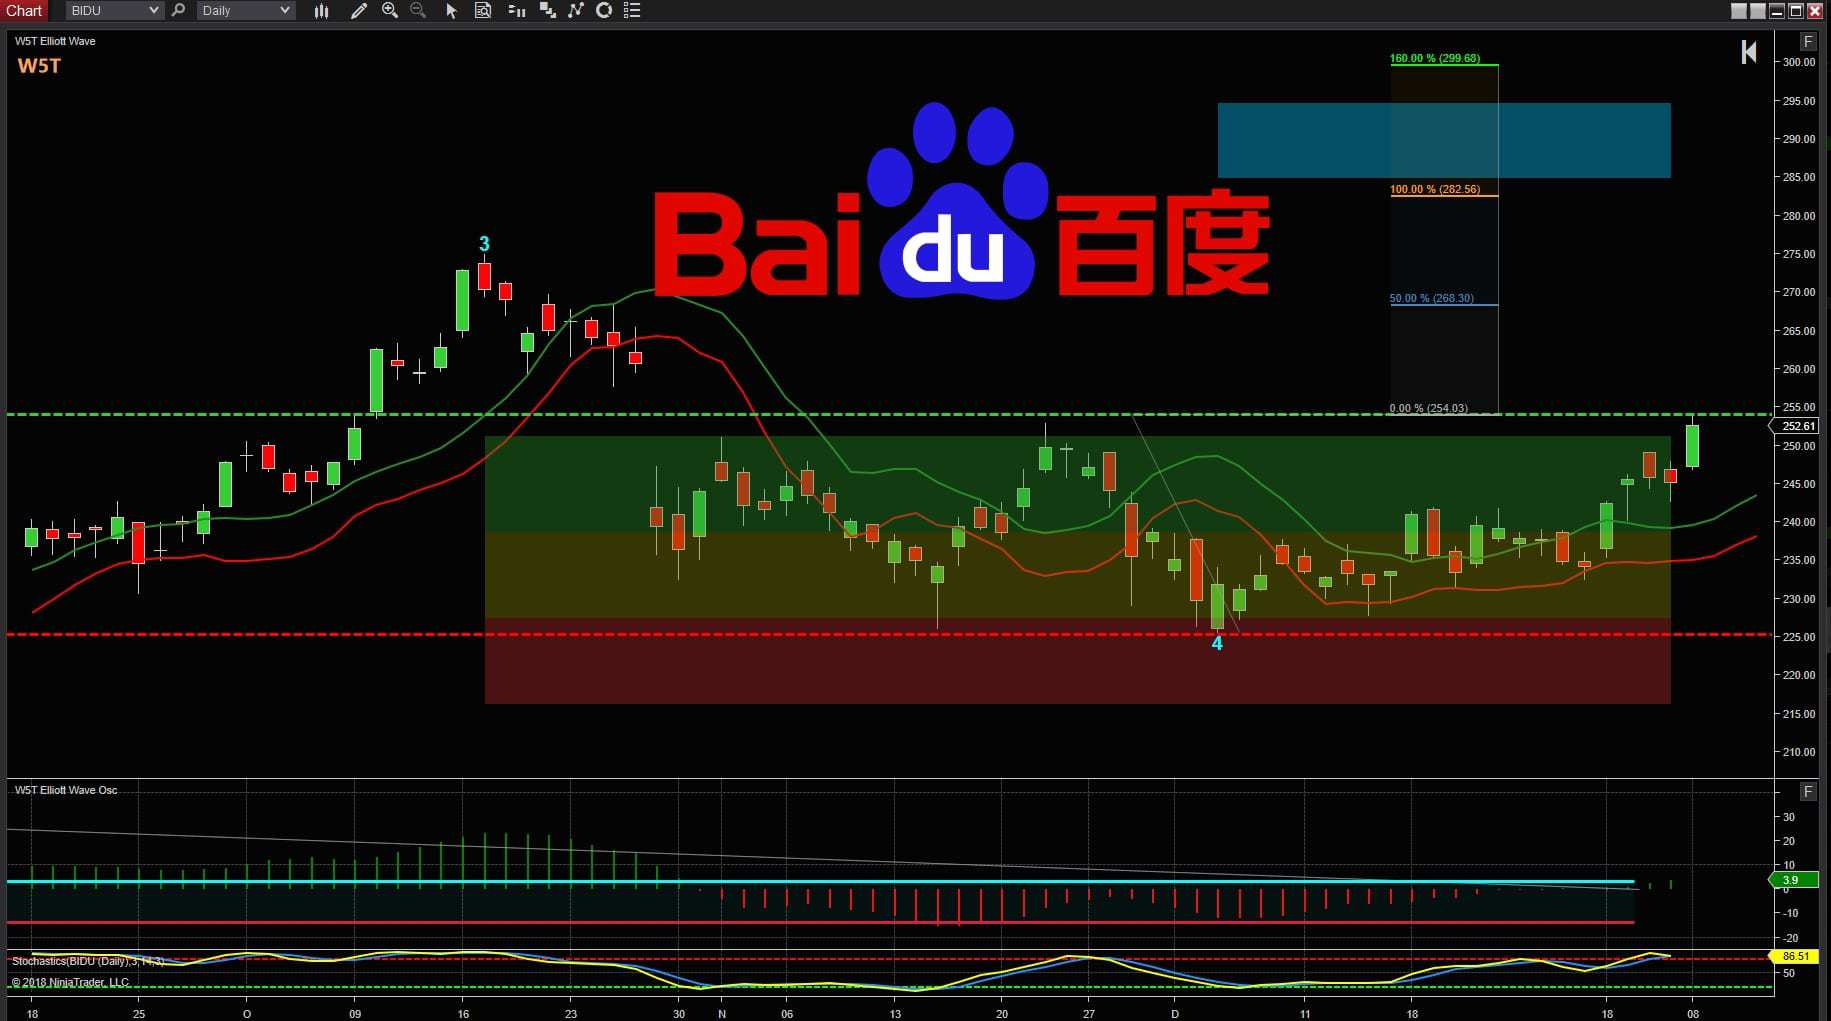 image of BIDU logo on Trading Chart for Stocks Trade Idea